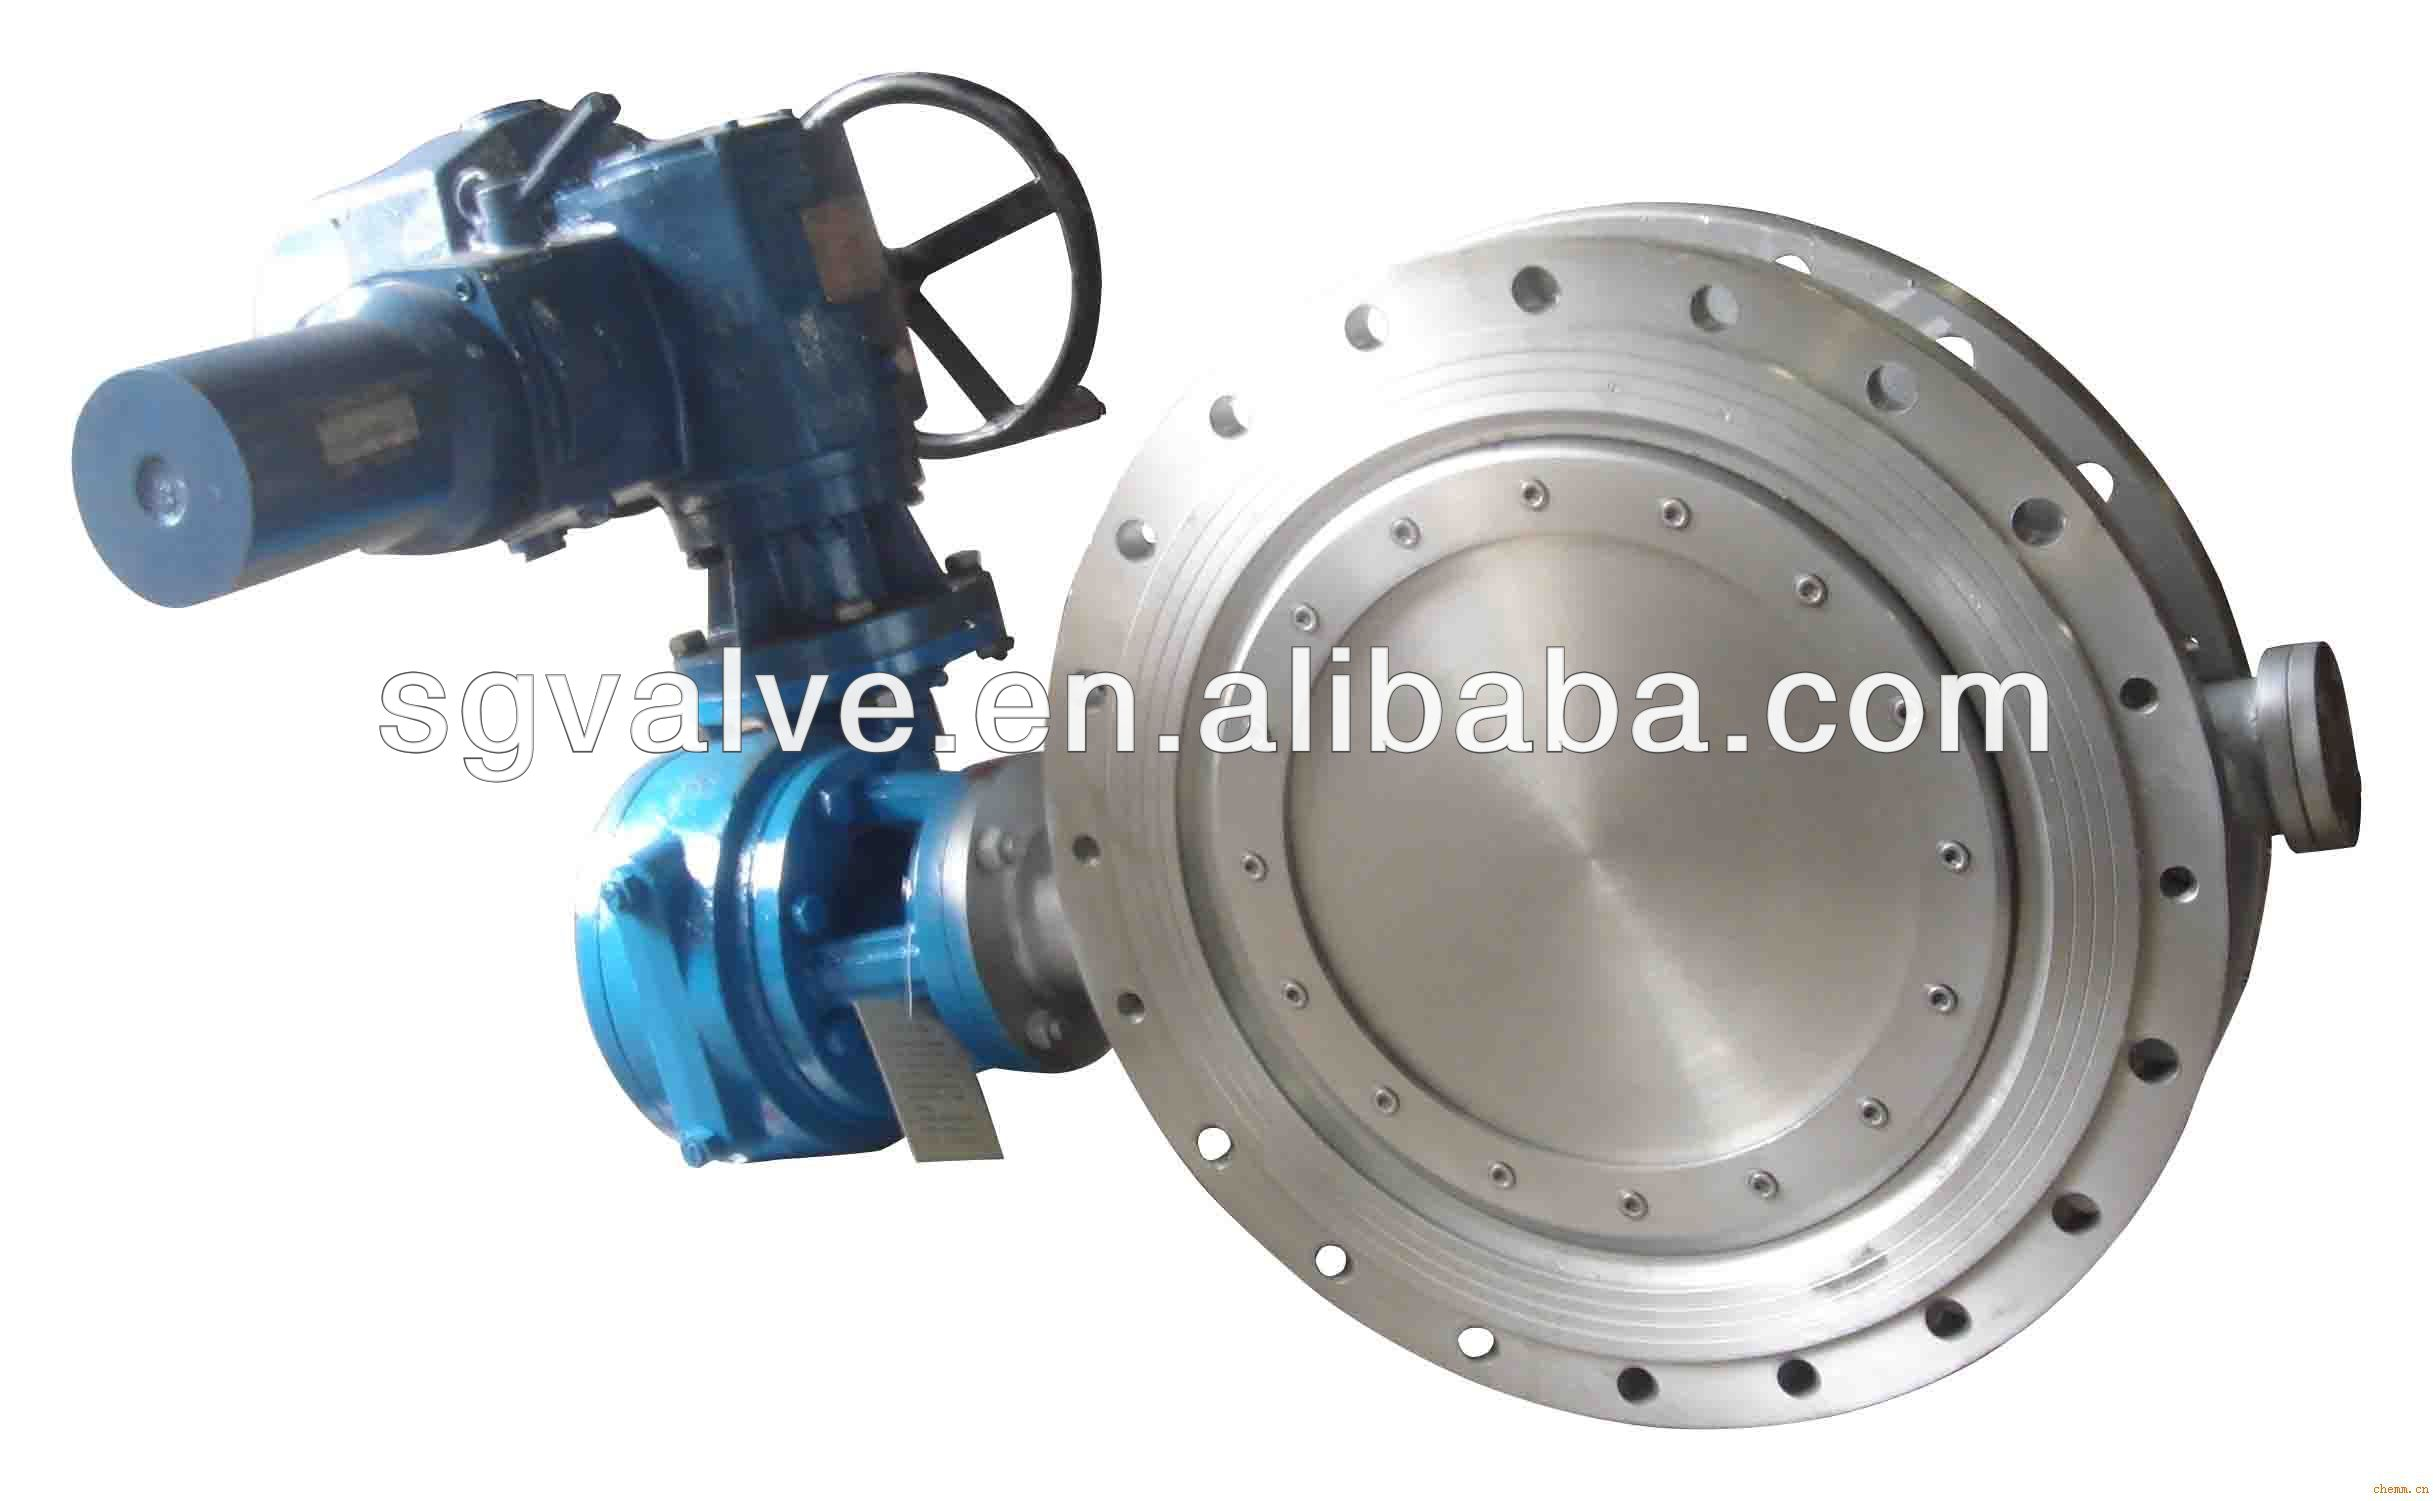 Double Flange Metal Seat Butterfly Valve Gear Operation